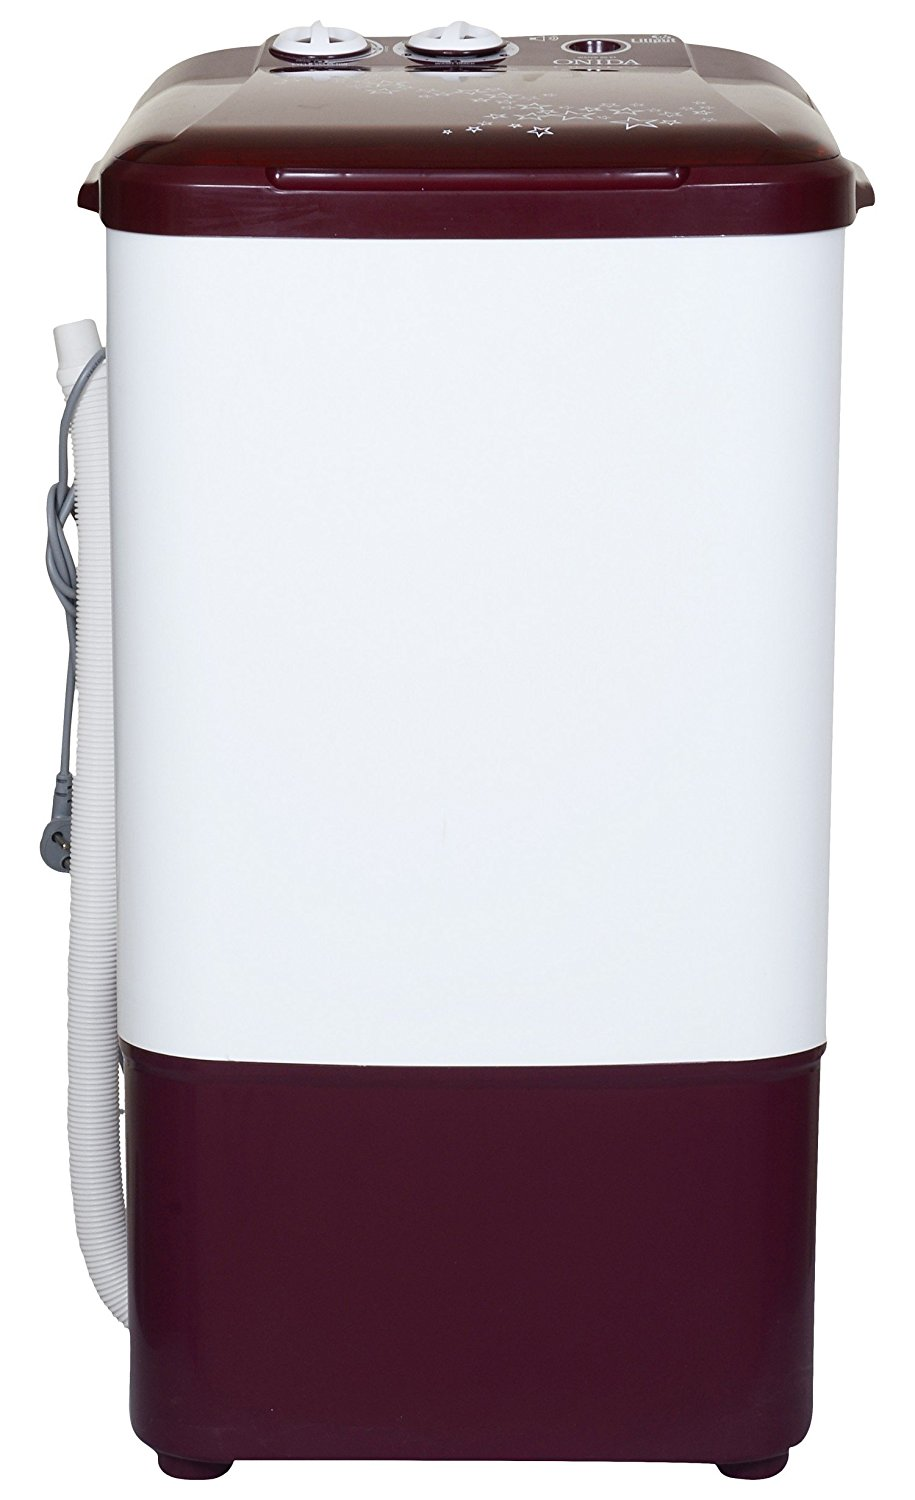 Onida WS65WLPT1LR Liliput Semi-automatic Top-loading Washing Machine